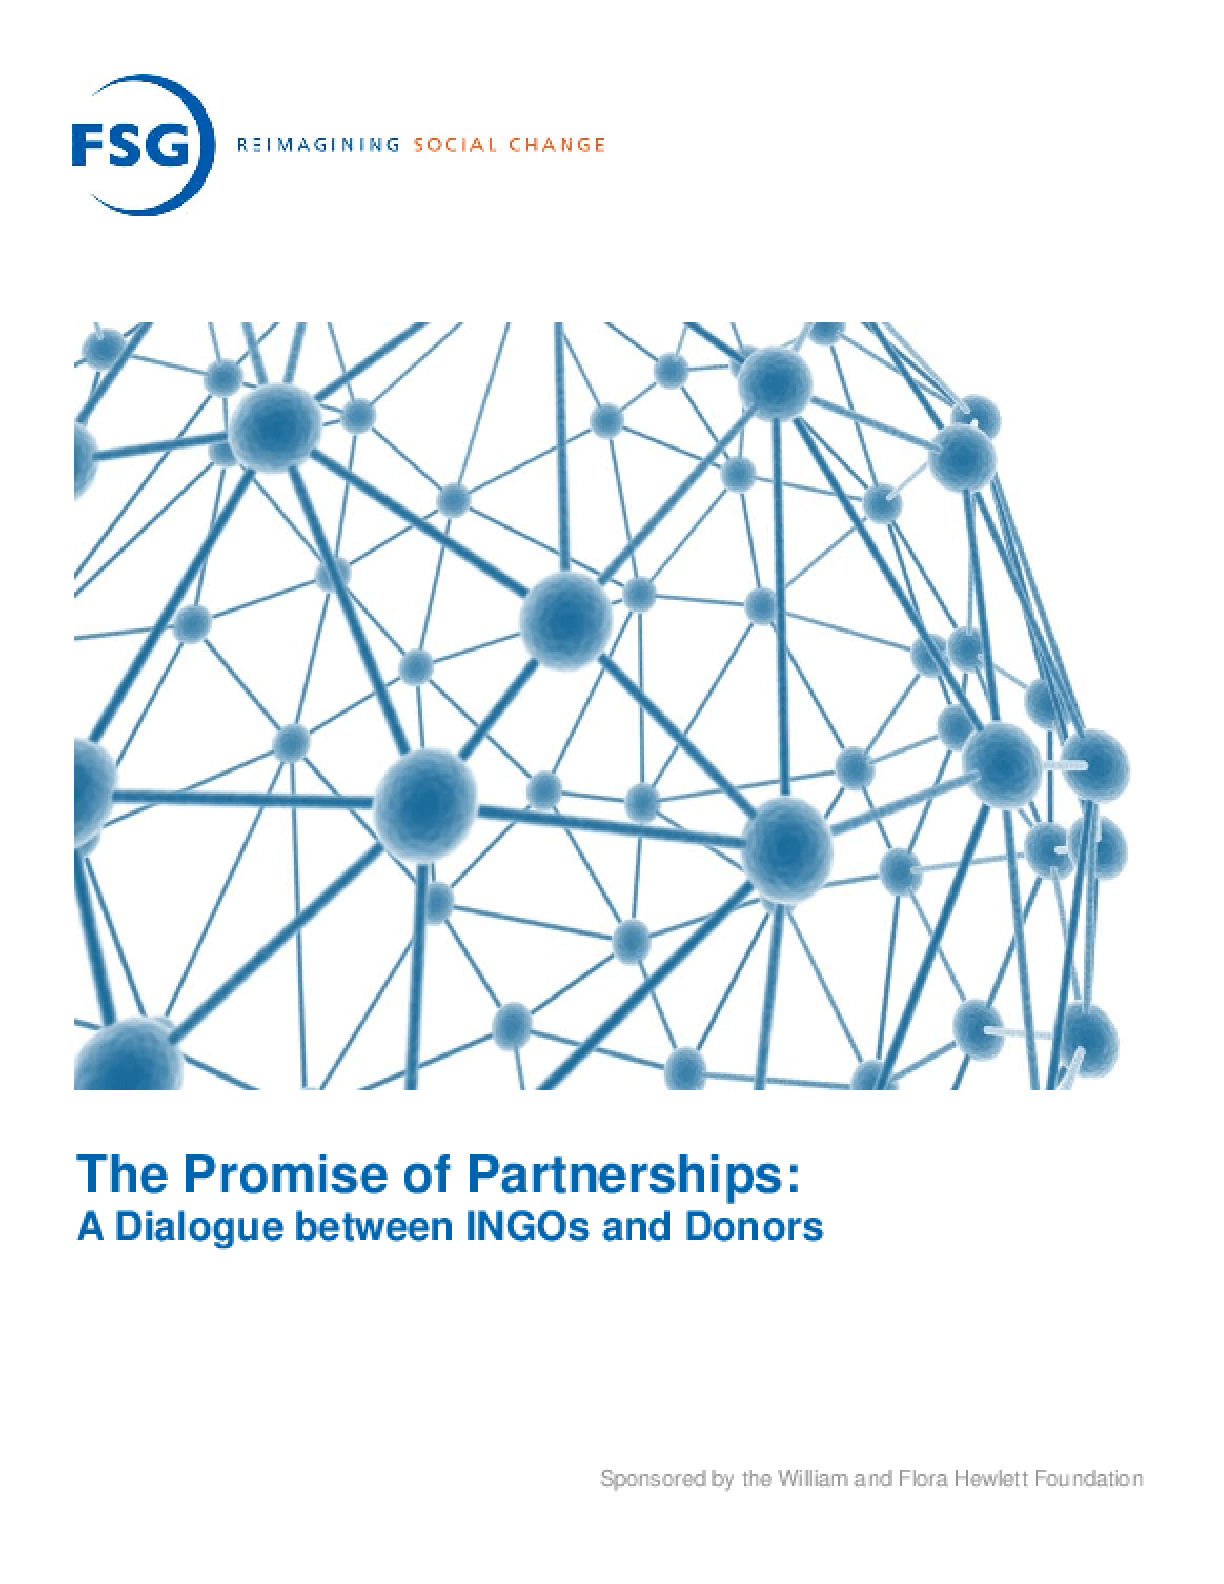 The Promise of Partnerships: a dialogue between INGOs and donors